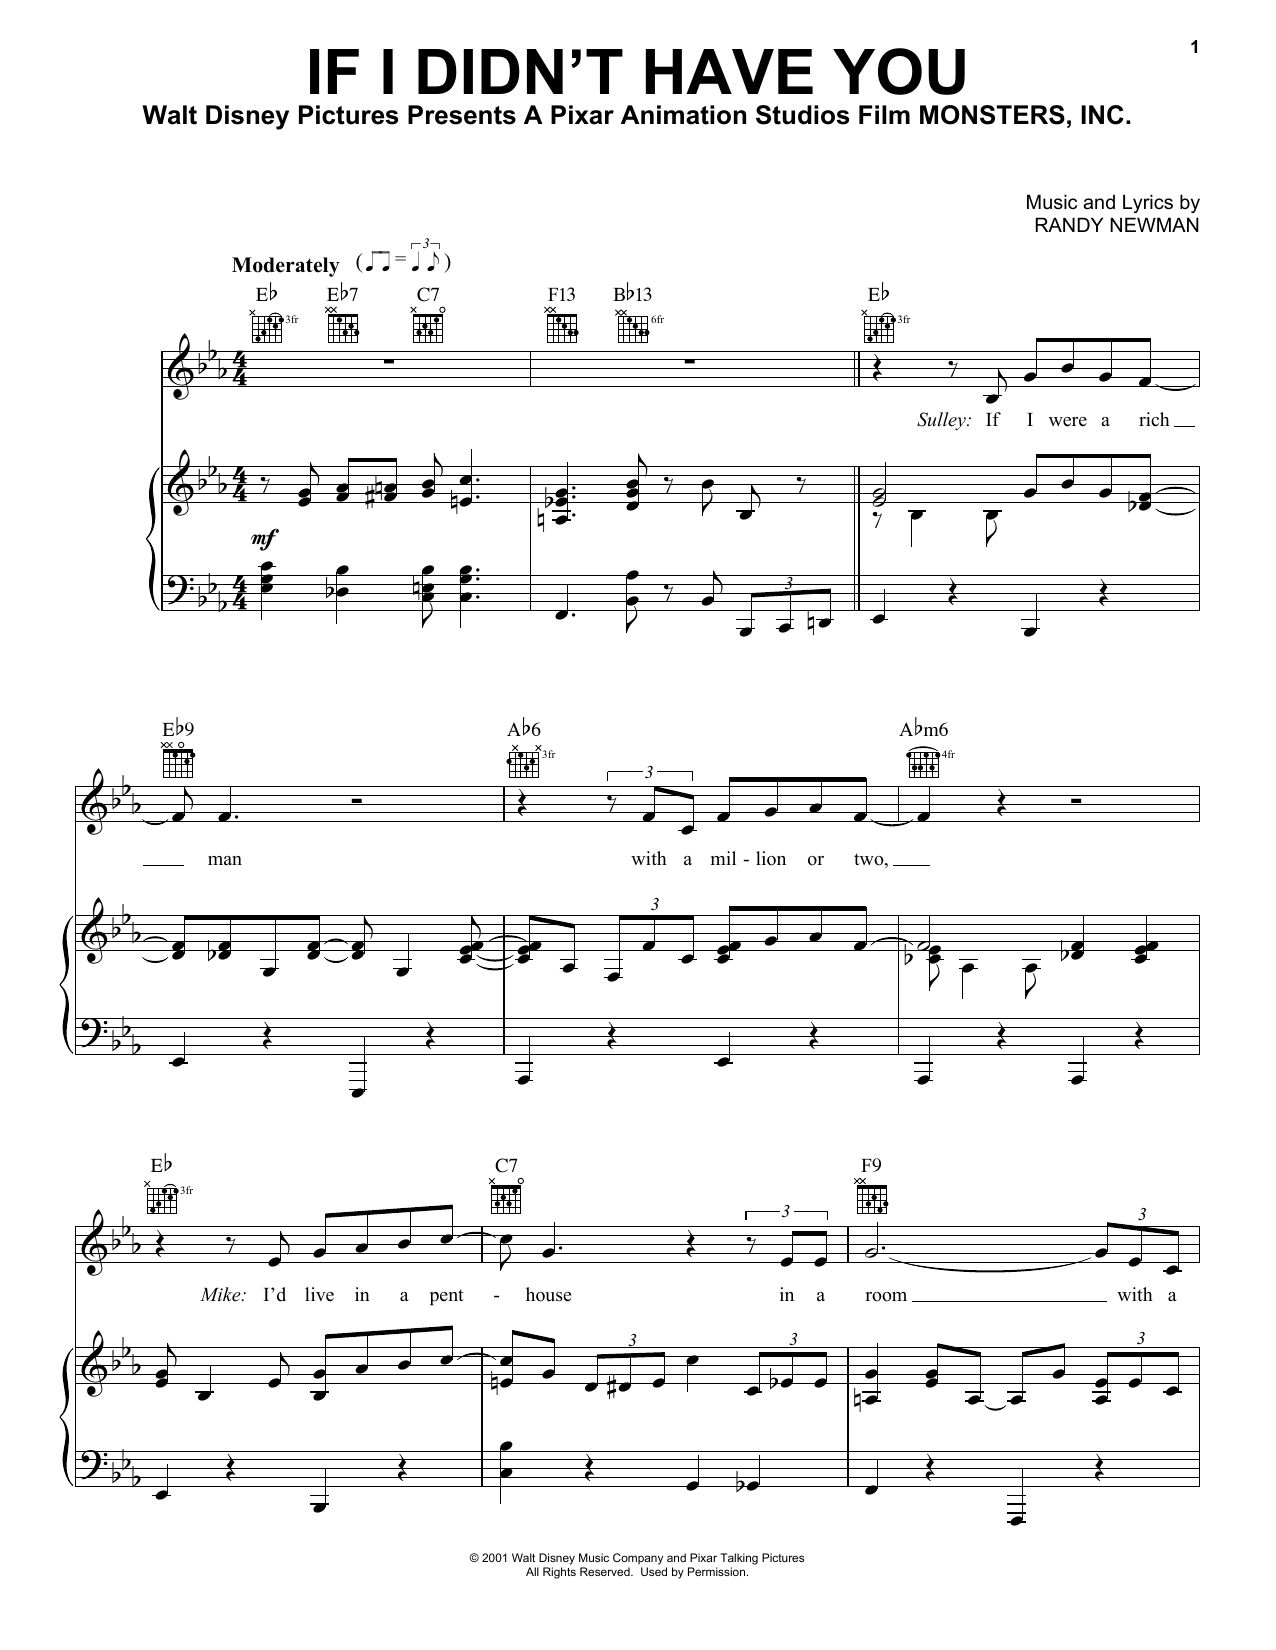 Download John H. Beck 'Snare And Rim' Digital Sheet Music Notes & Chords and start playing in minutes